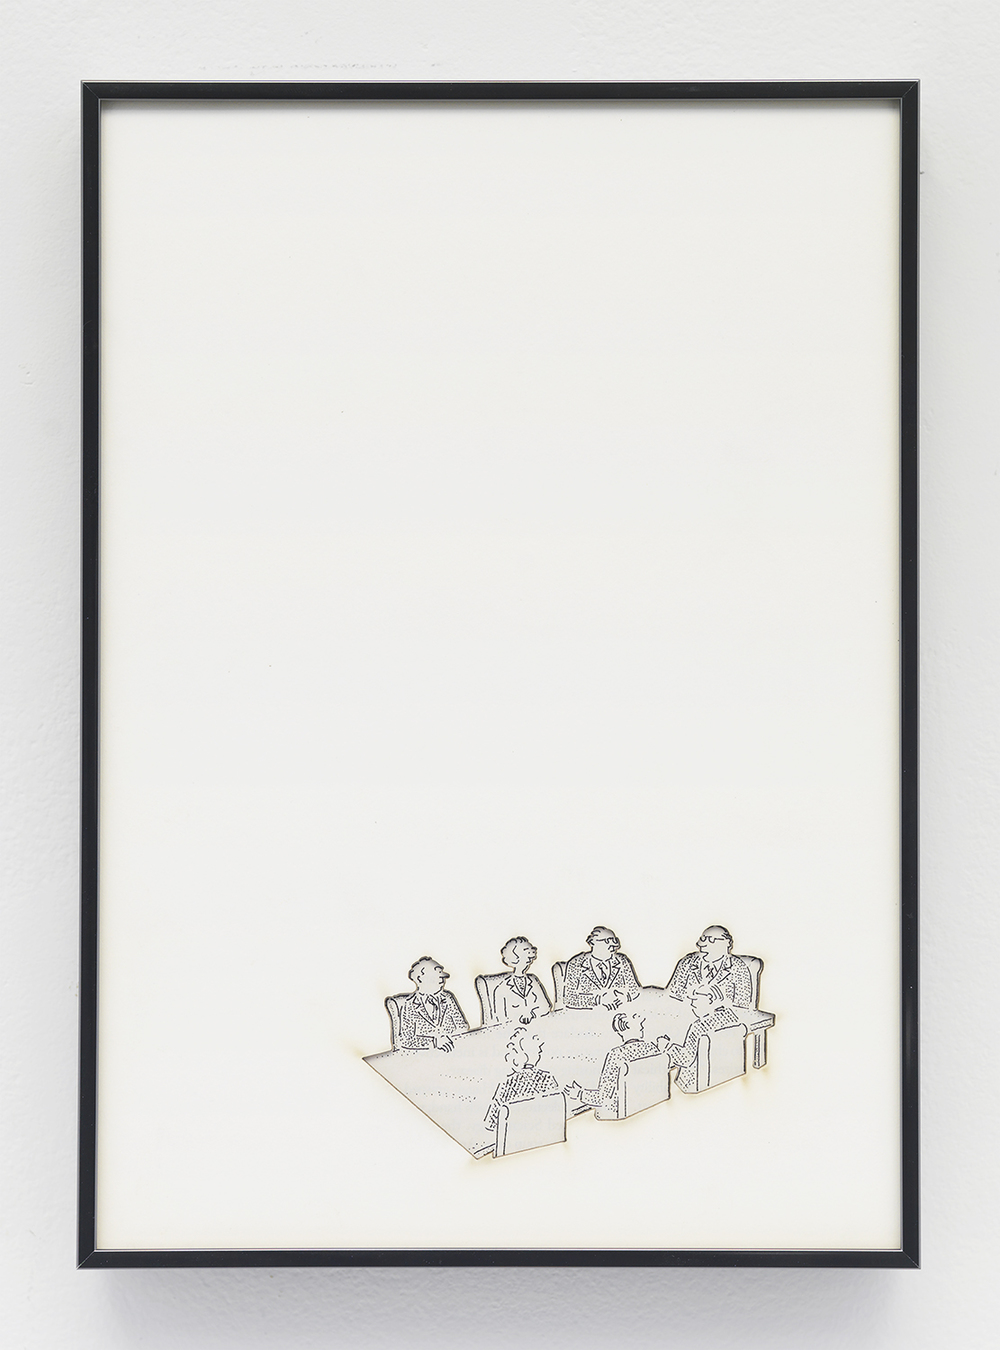 Artifact: Language Barrier (Jean Godefroy) 2014 Cotton and paper in artist frame 11 x 8 inches